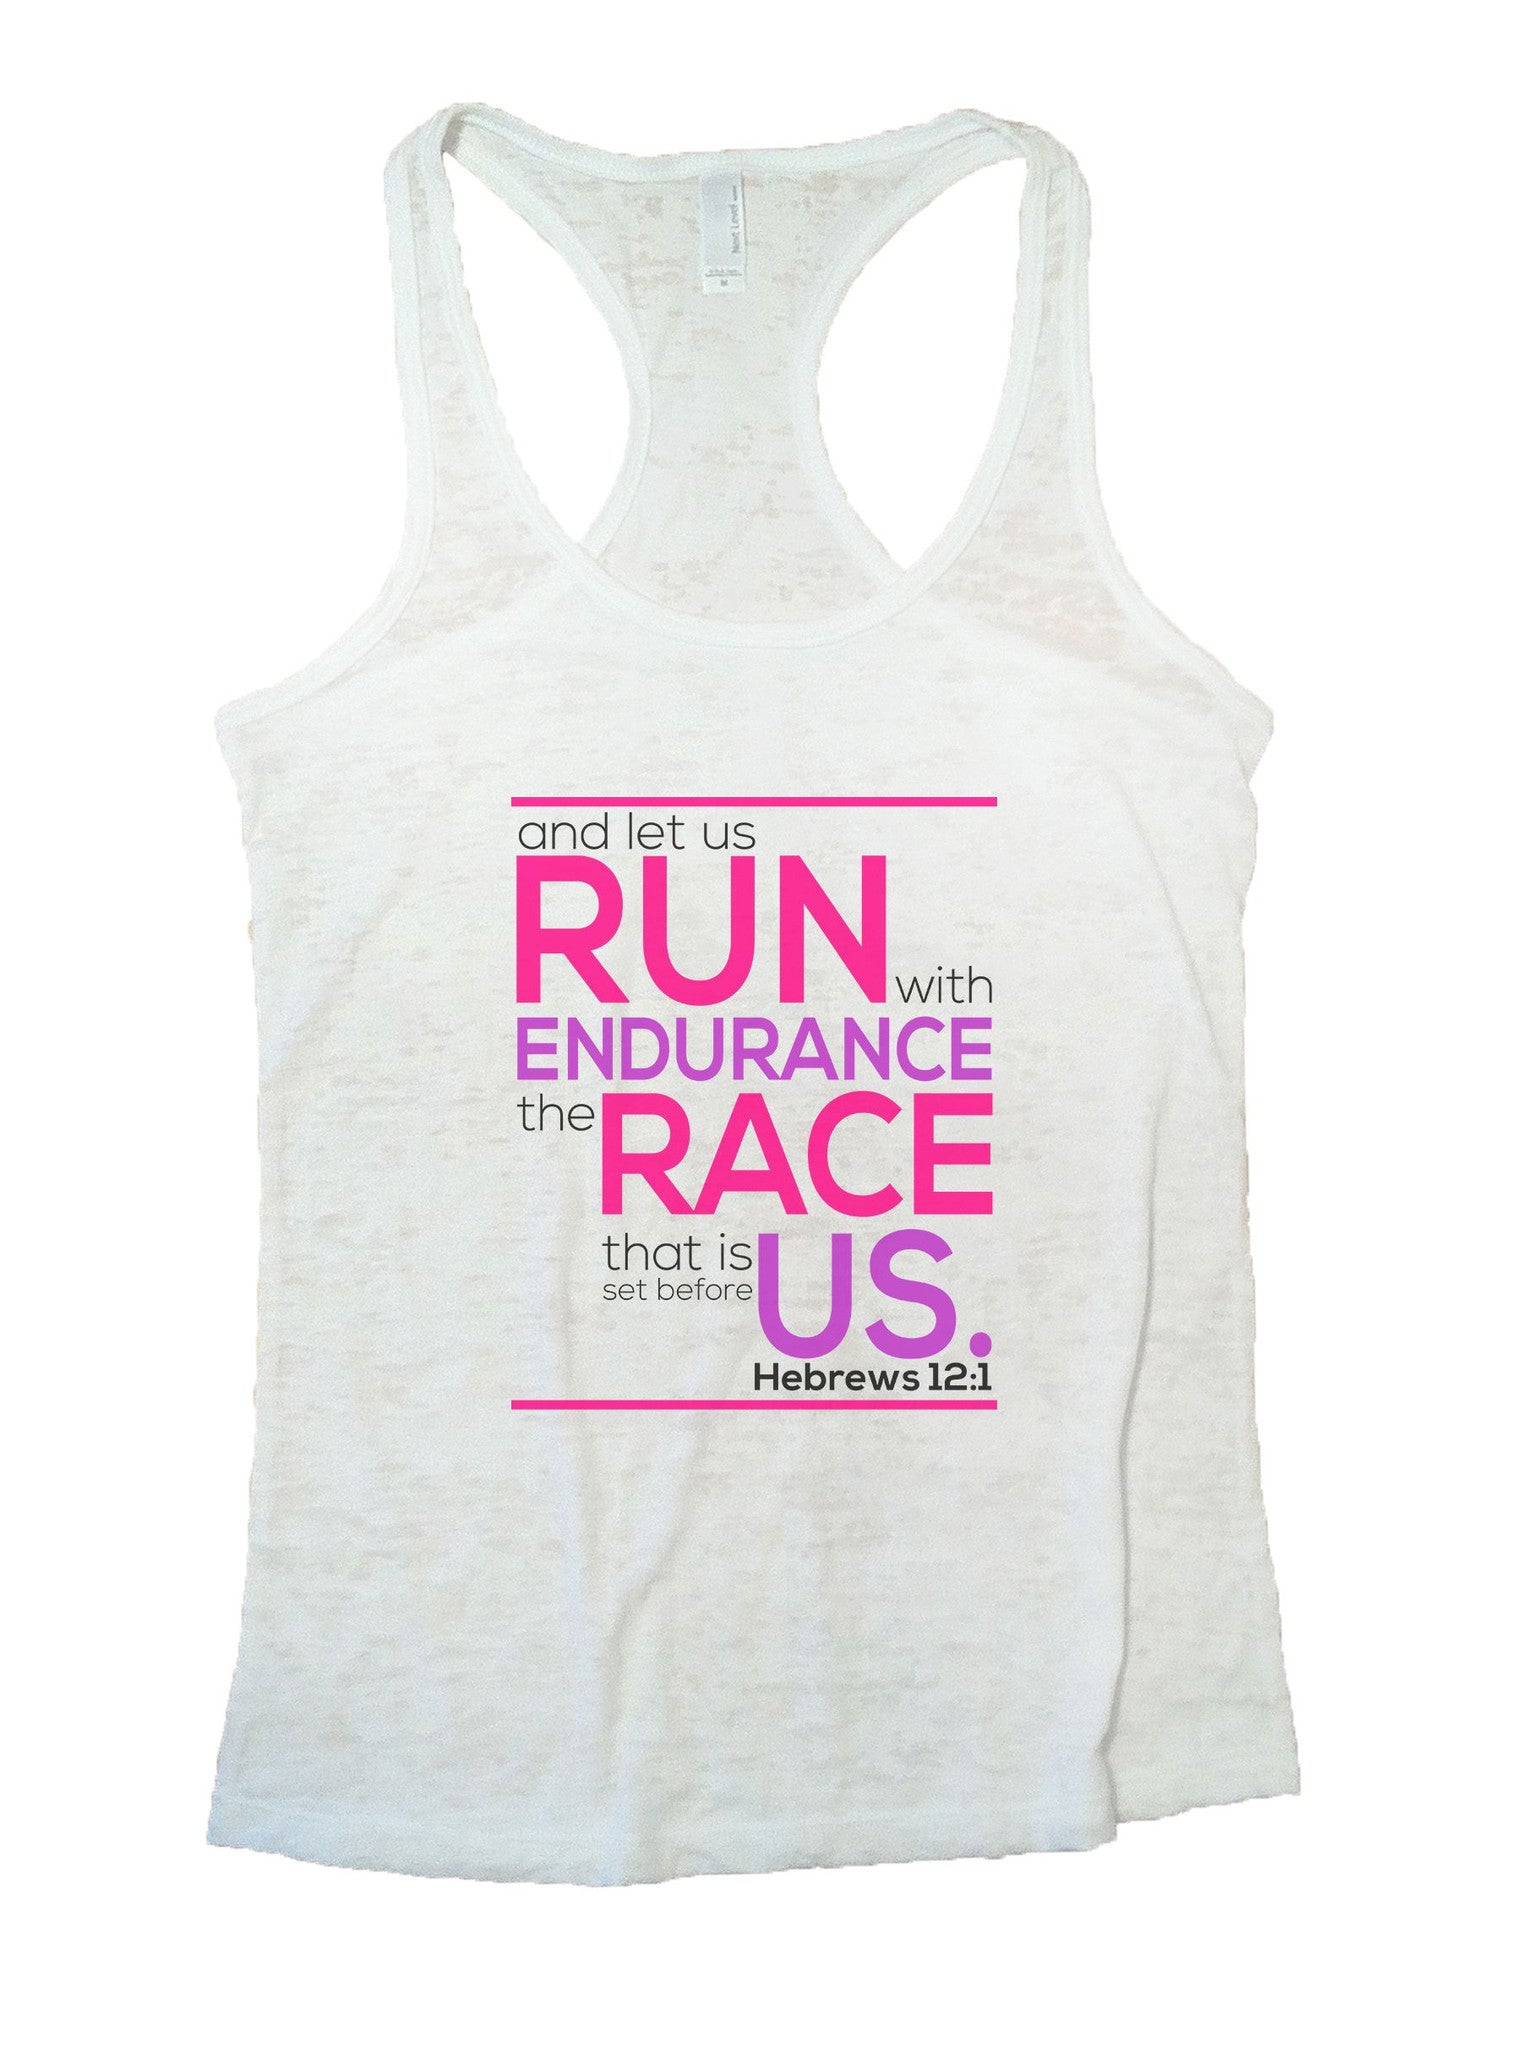 Run Endurance Race Us Burnout Tank Top By BurnoutTankTops.com - 1036 - Funny Shirts Tank Tops Burnouts and Triblends  - 6